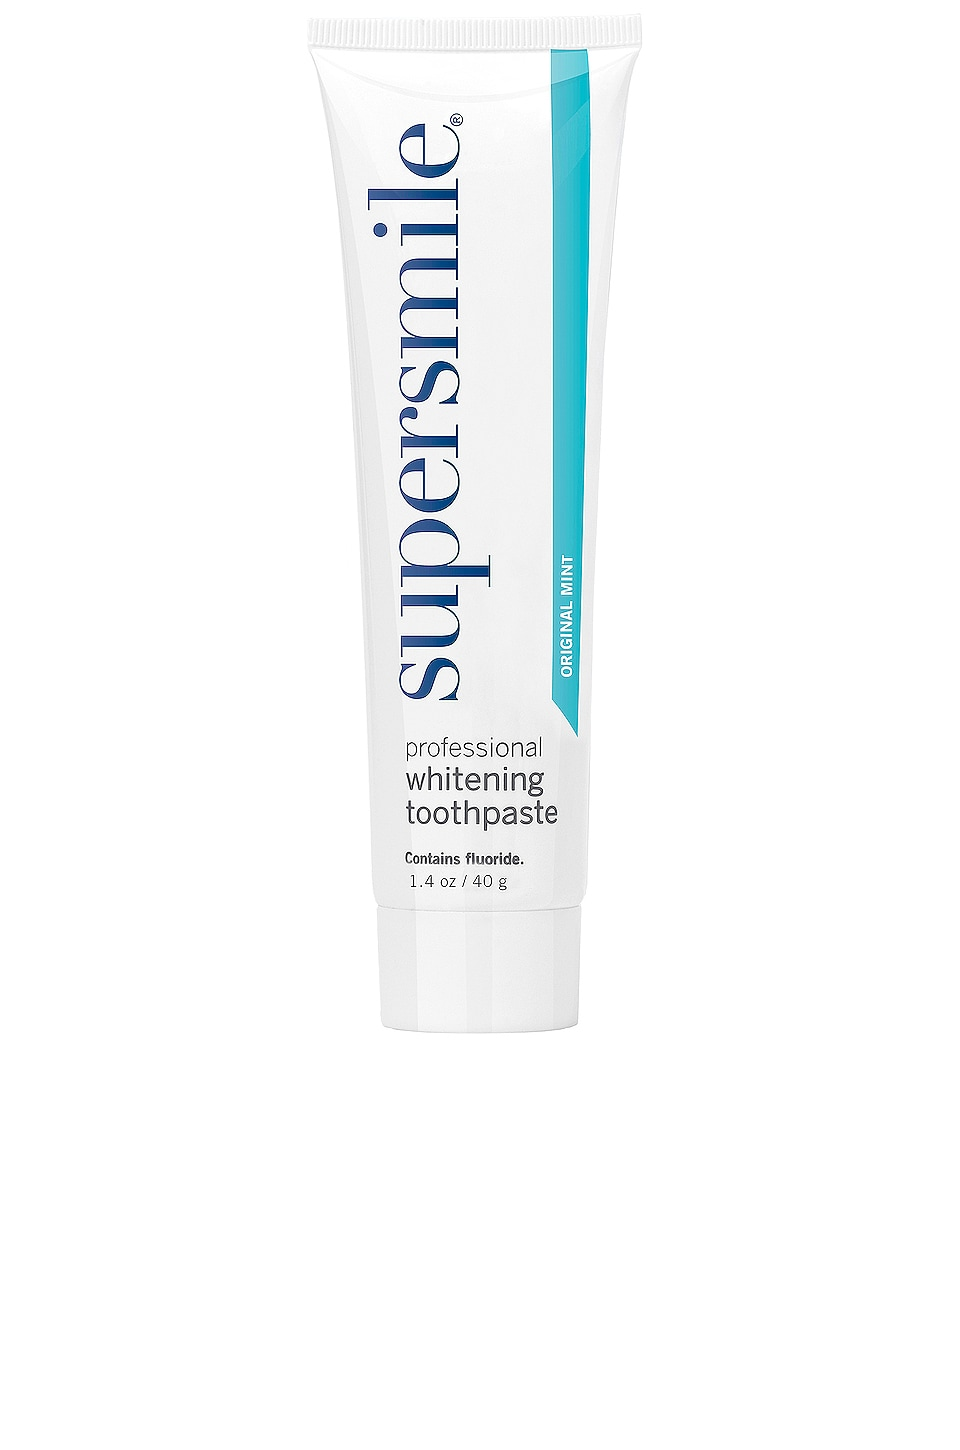 SUPERSMILE PROFESSIONAL WHITENING TRAVEL TOOTHPASTE